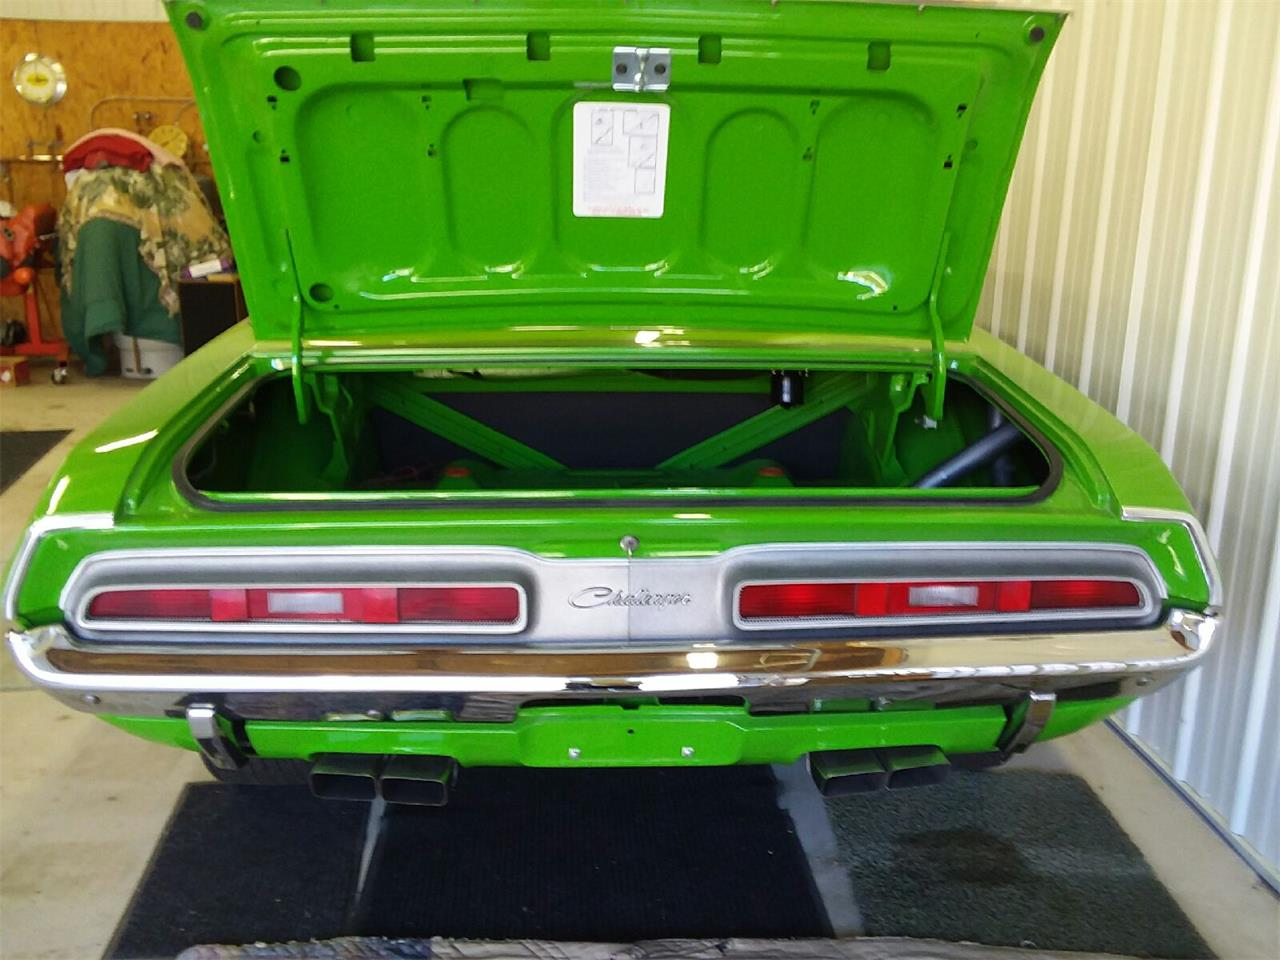 1971 Dodge Challenger R/T for sale in Waterford, PA – photo 17